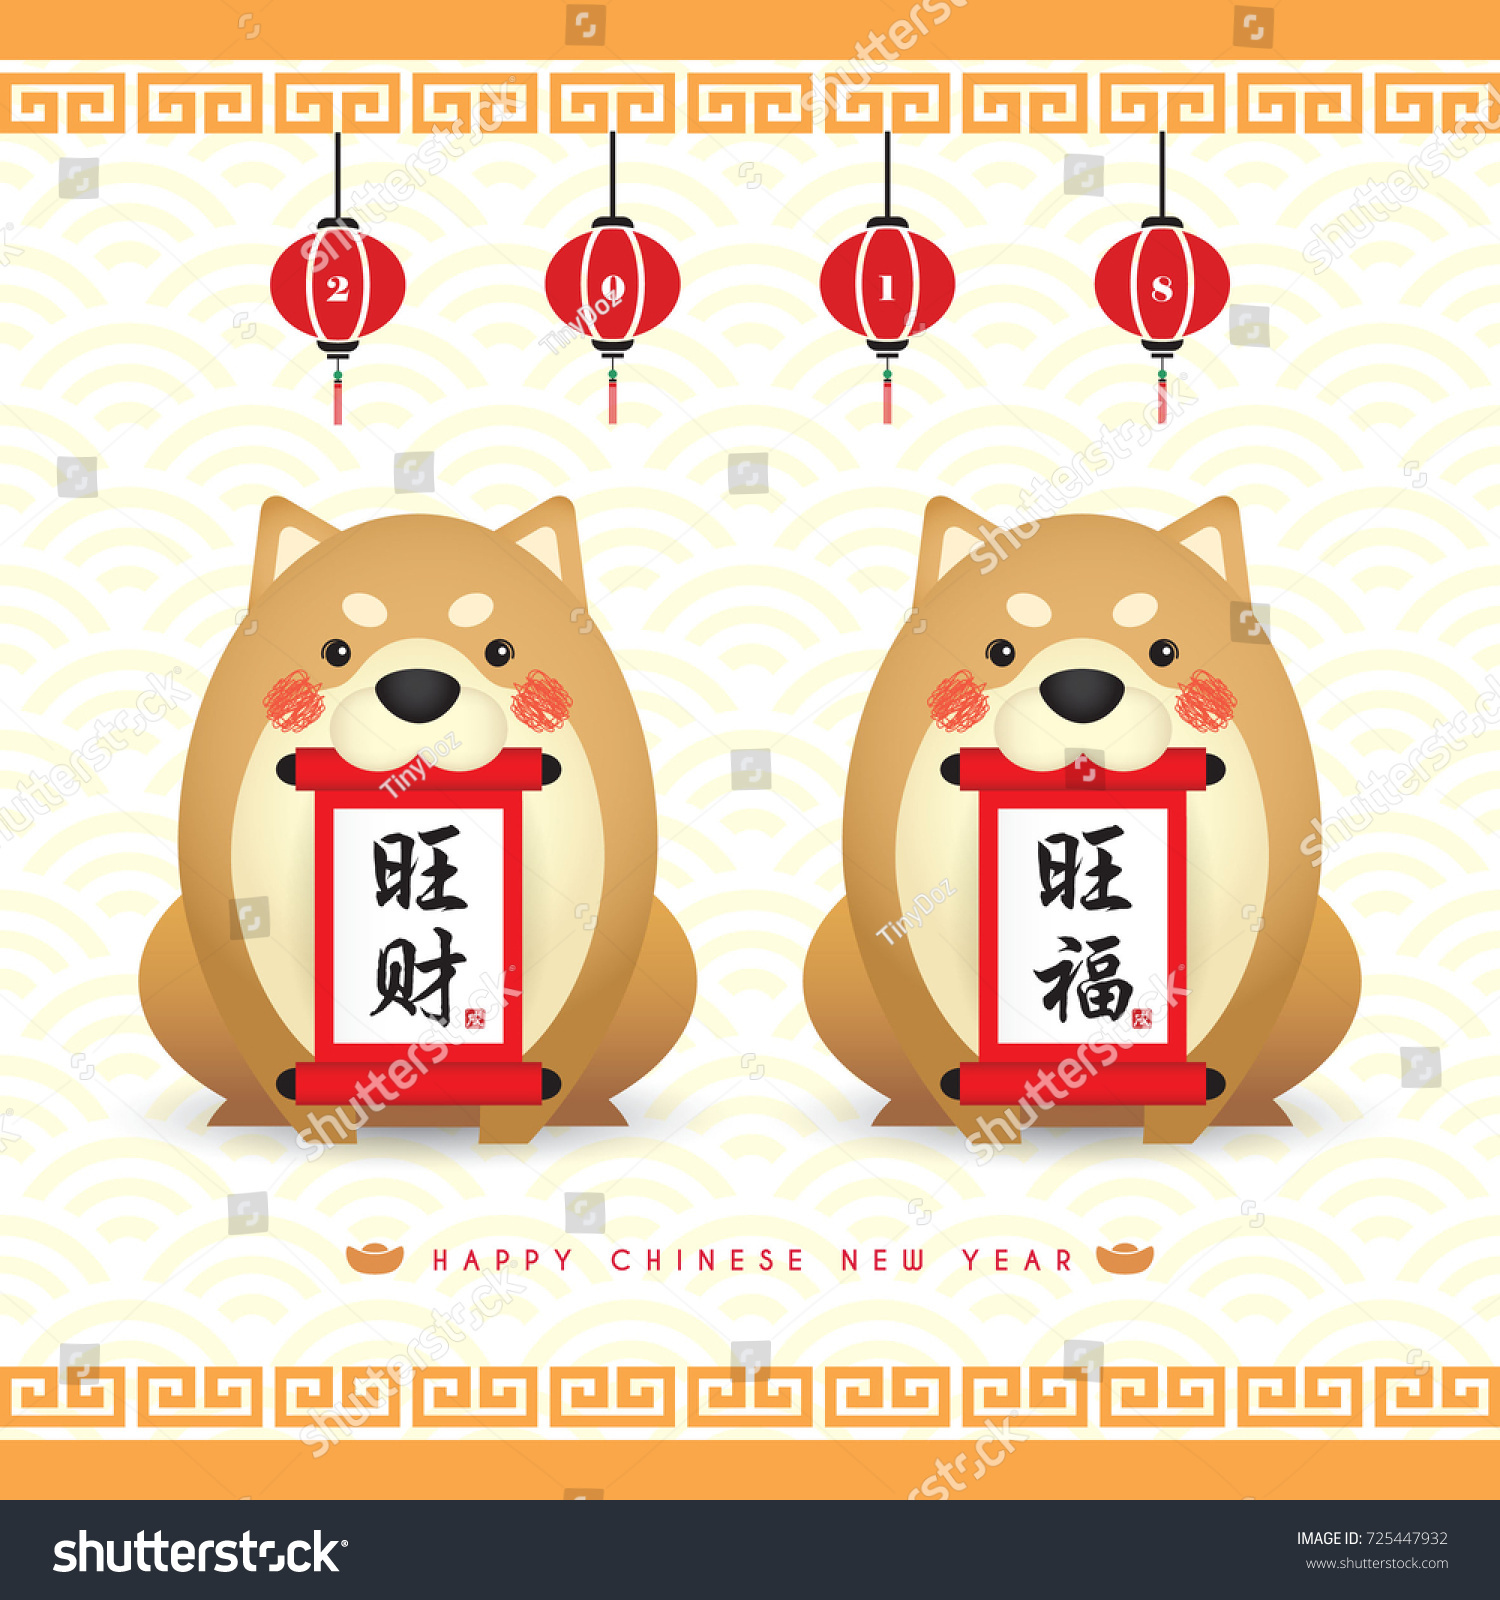 2018 chinese new year cute cartoon dog with scroll and lanterns translation